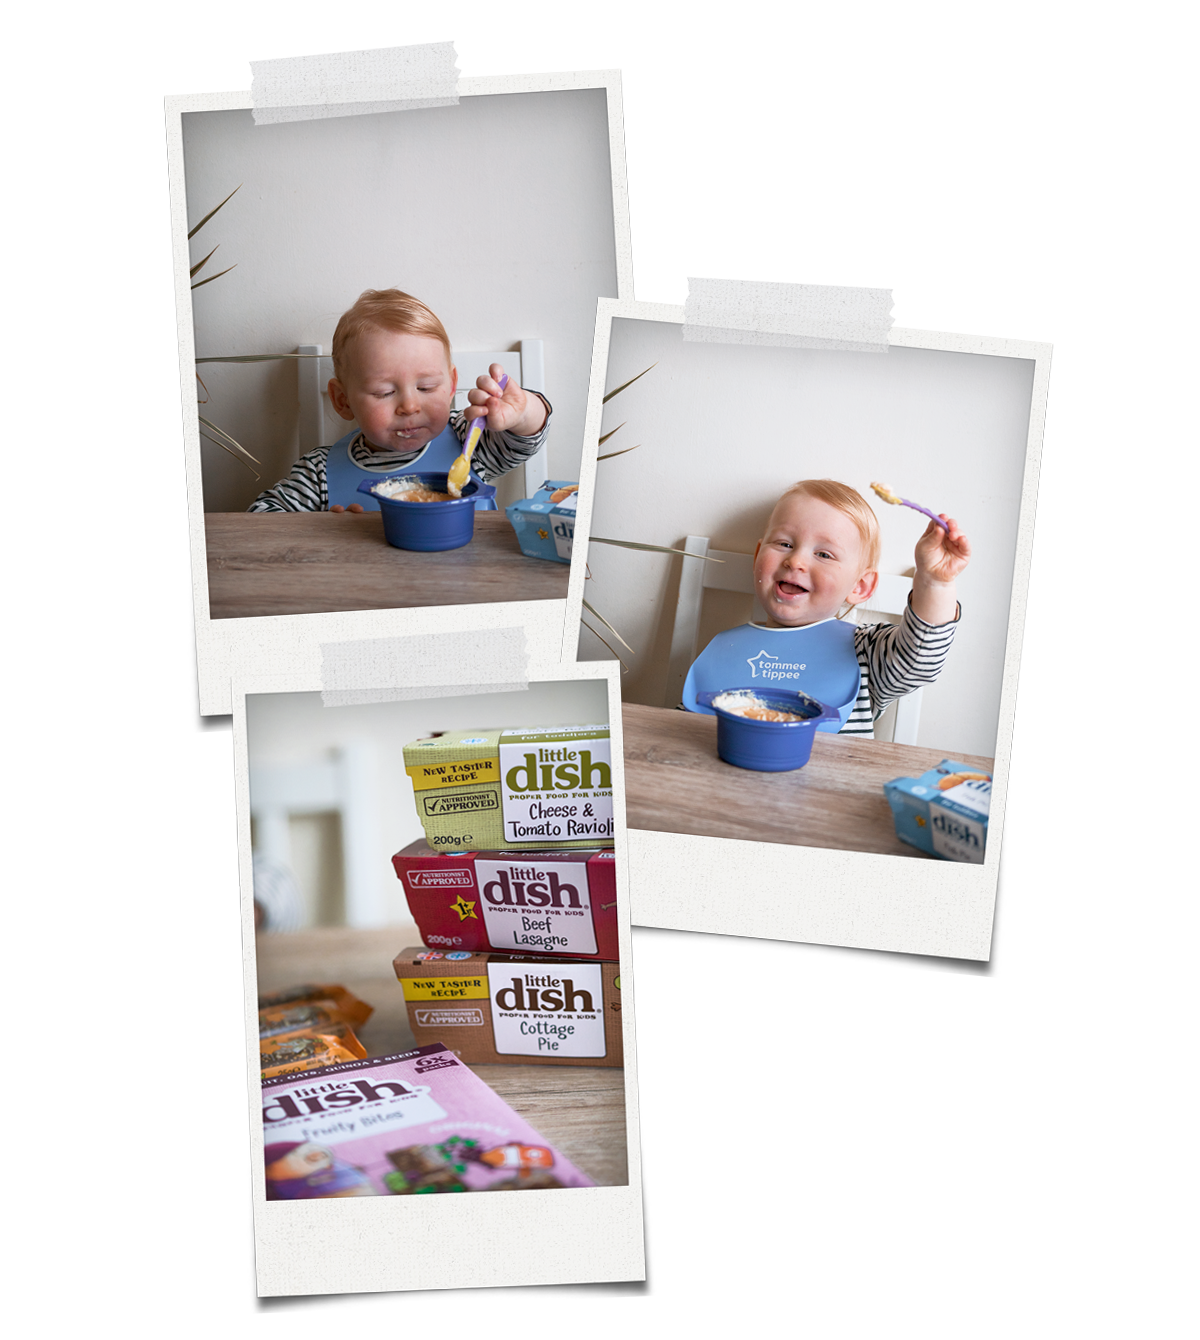 baby bjorn little dish review highchair toddler messy eating